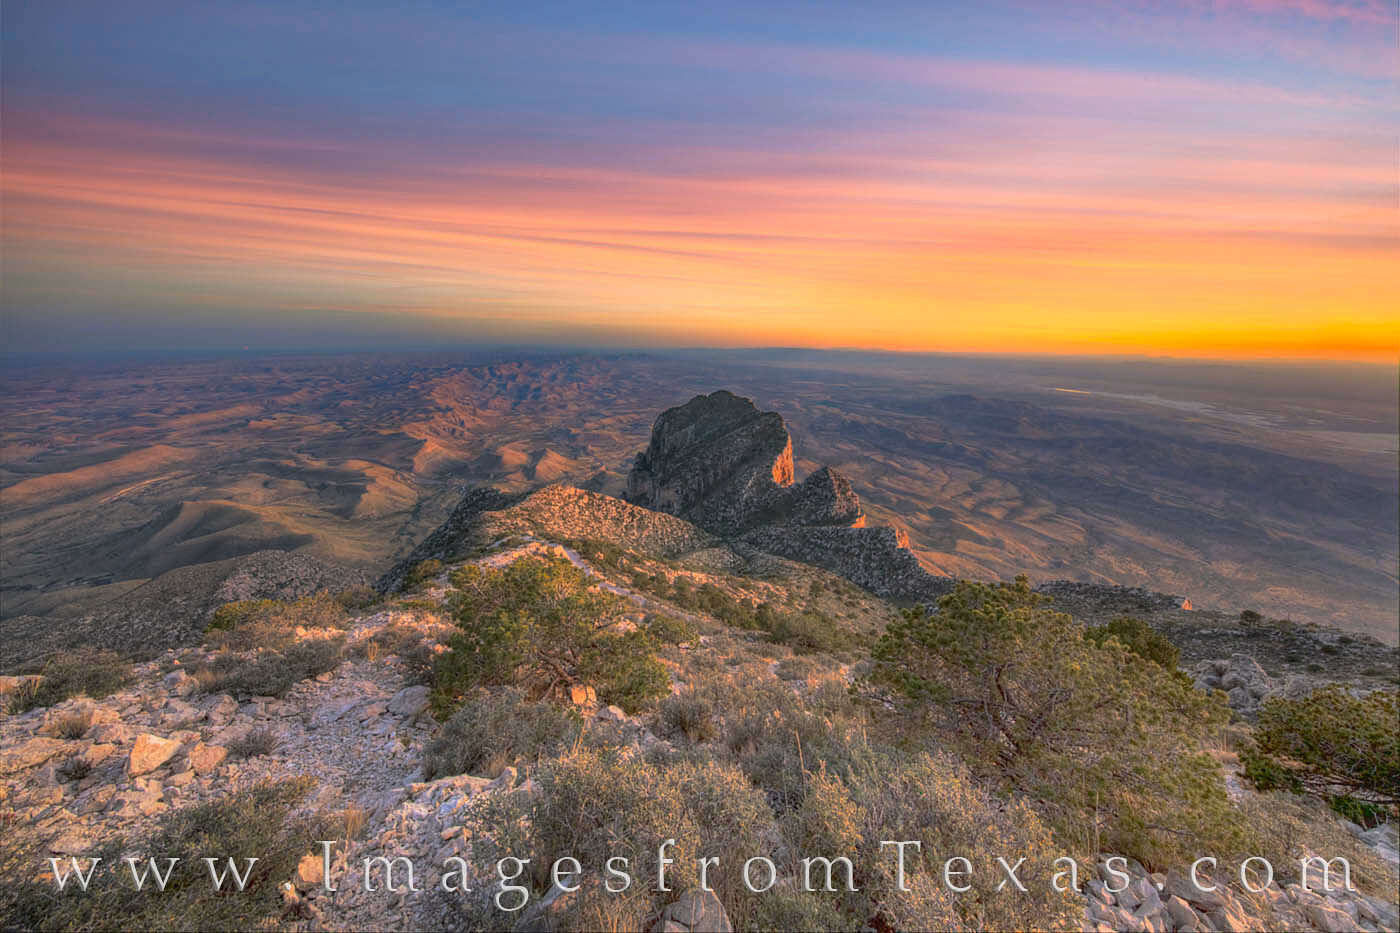 Guadalupe Peak, El Capitan, Guadalupe Mountains National Park, west Texas, Guadalupe Mountains, sunset, Chihuahuan Desert, Texas landscapes, texas icons, texas landmarks, photo